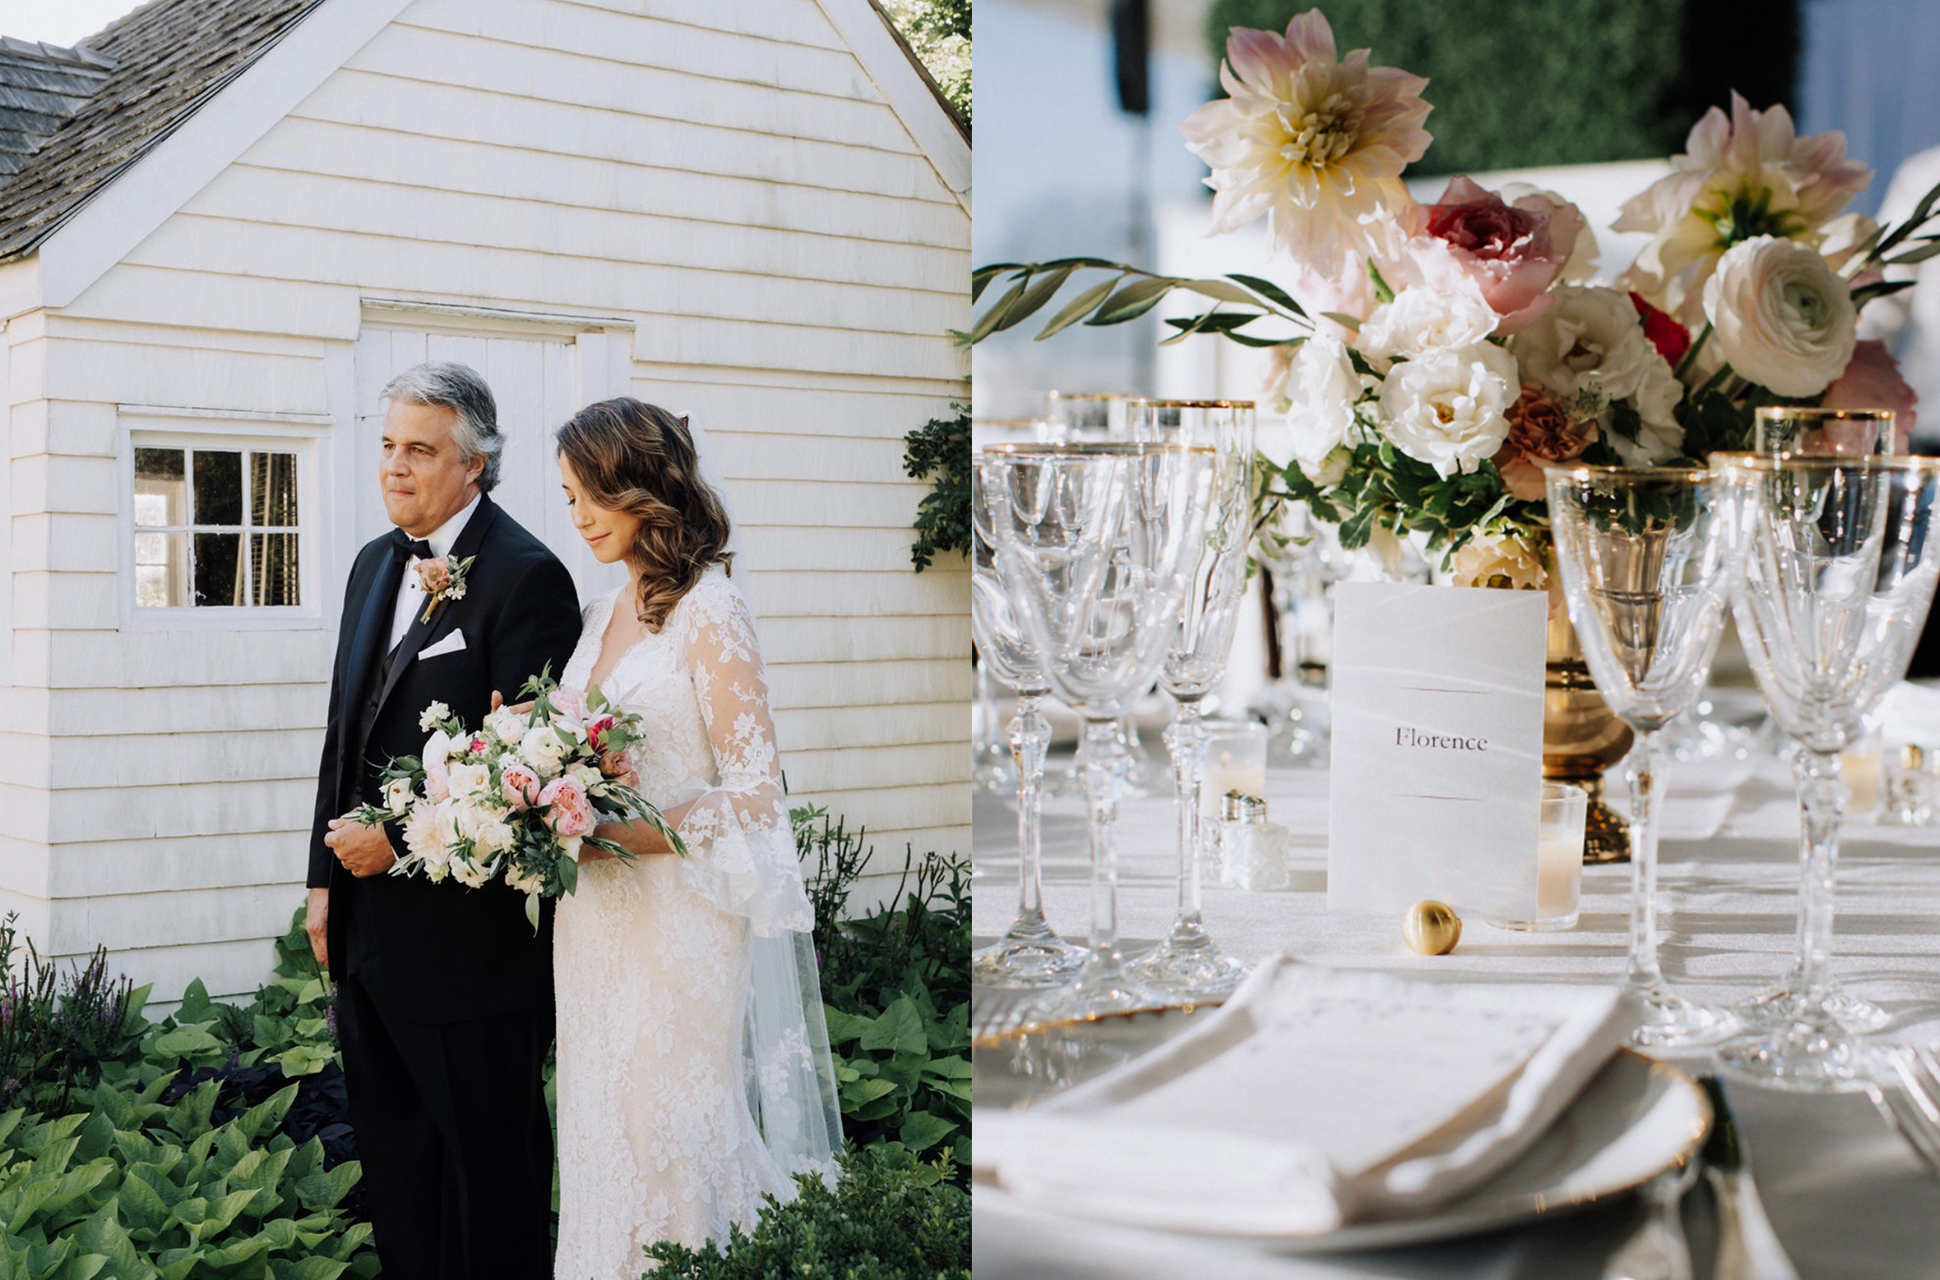 colly+flowers+elegant+vineyard+wedding+bedell+cellars.jpg